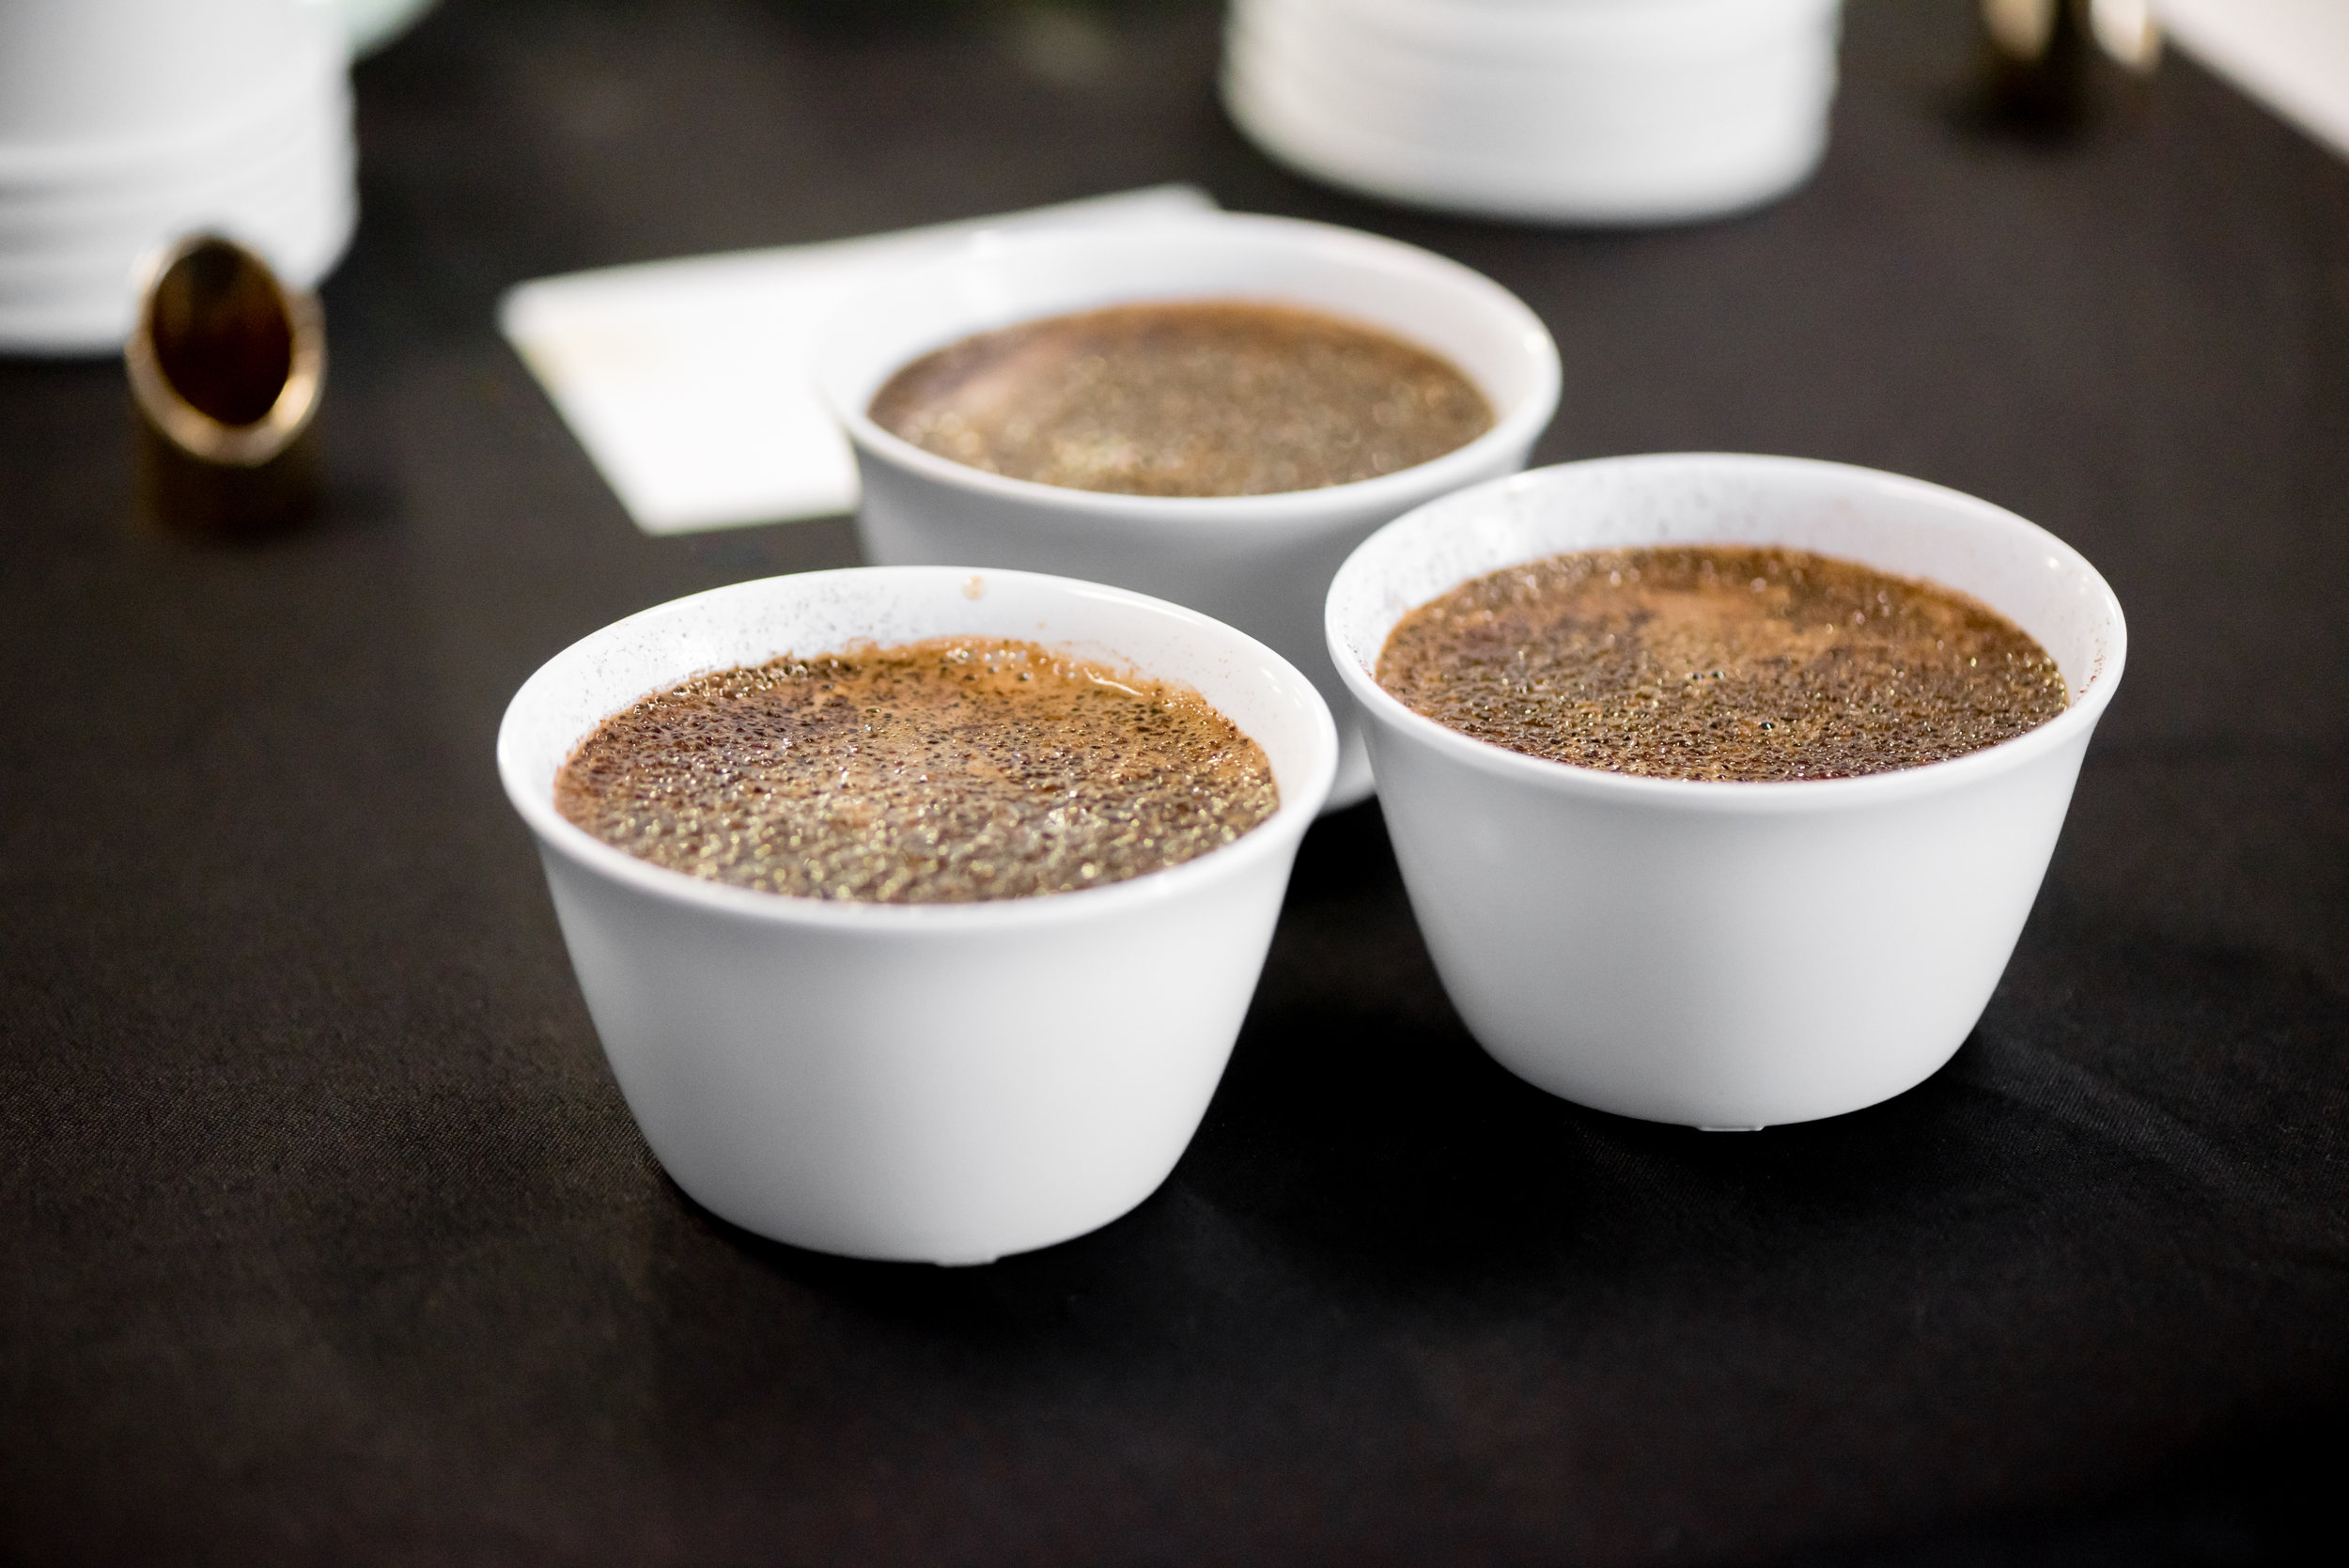 Cupping + Tasting - Mosaic Photo 19.jpg